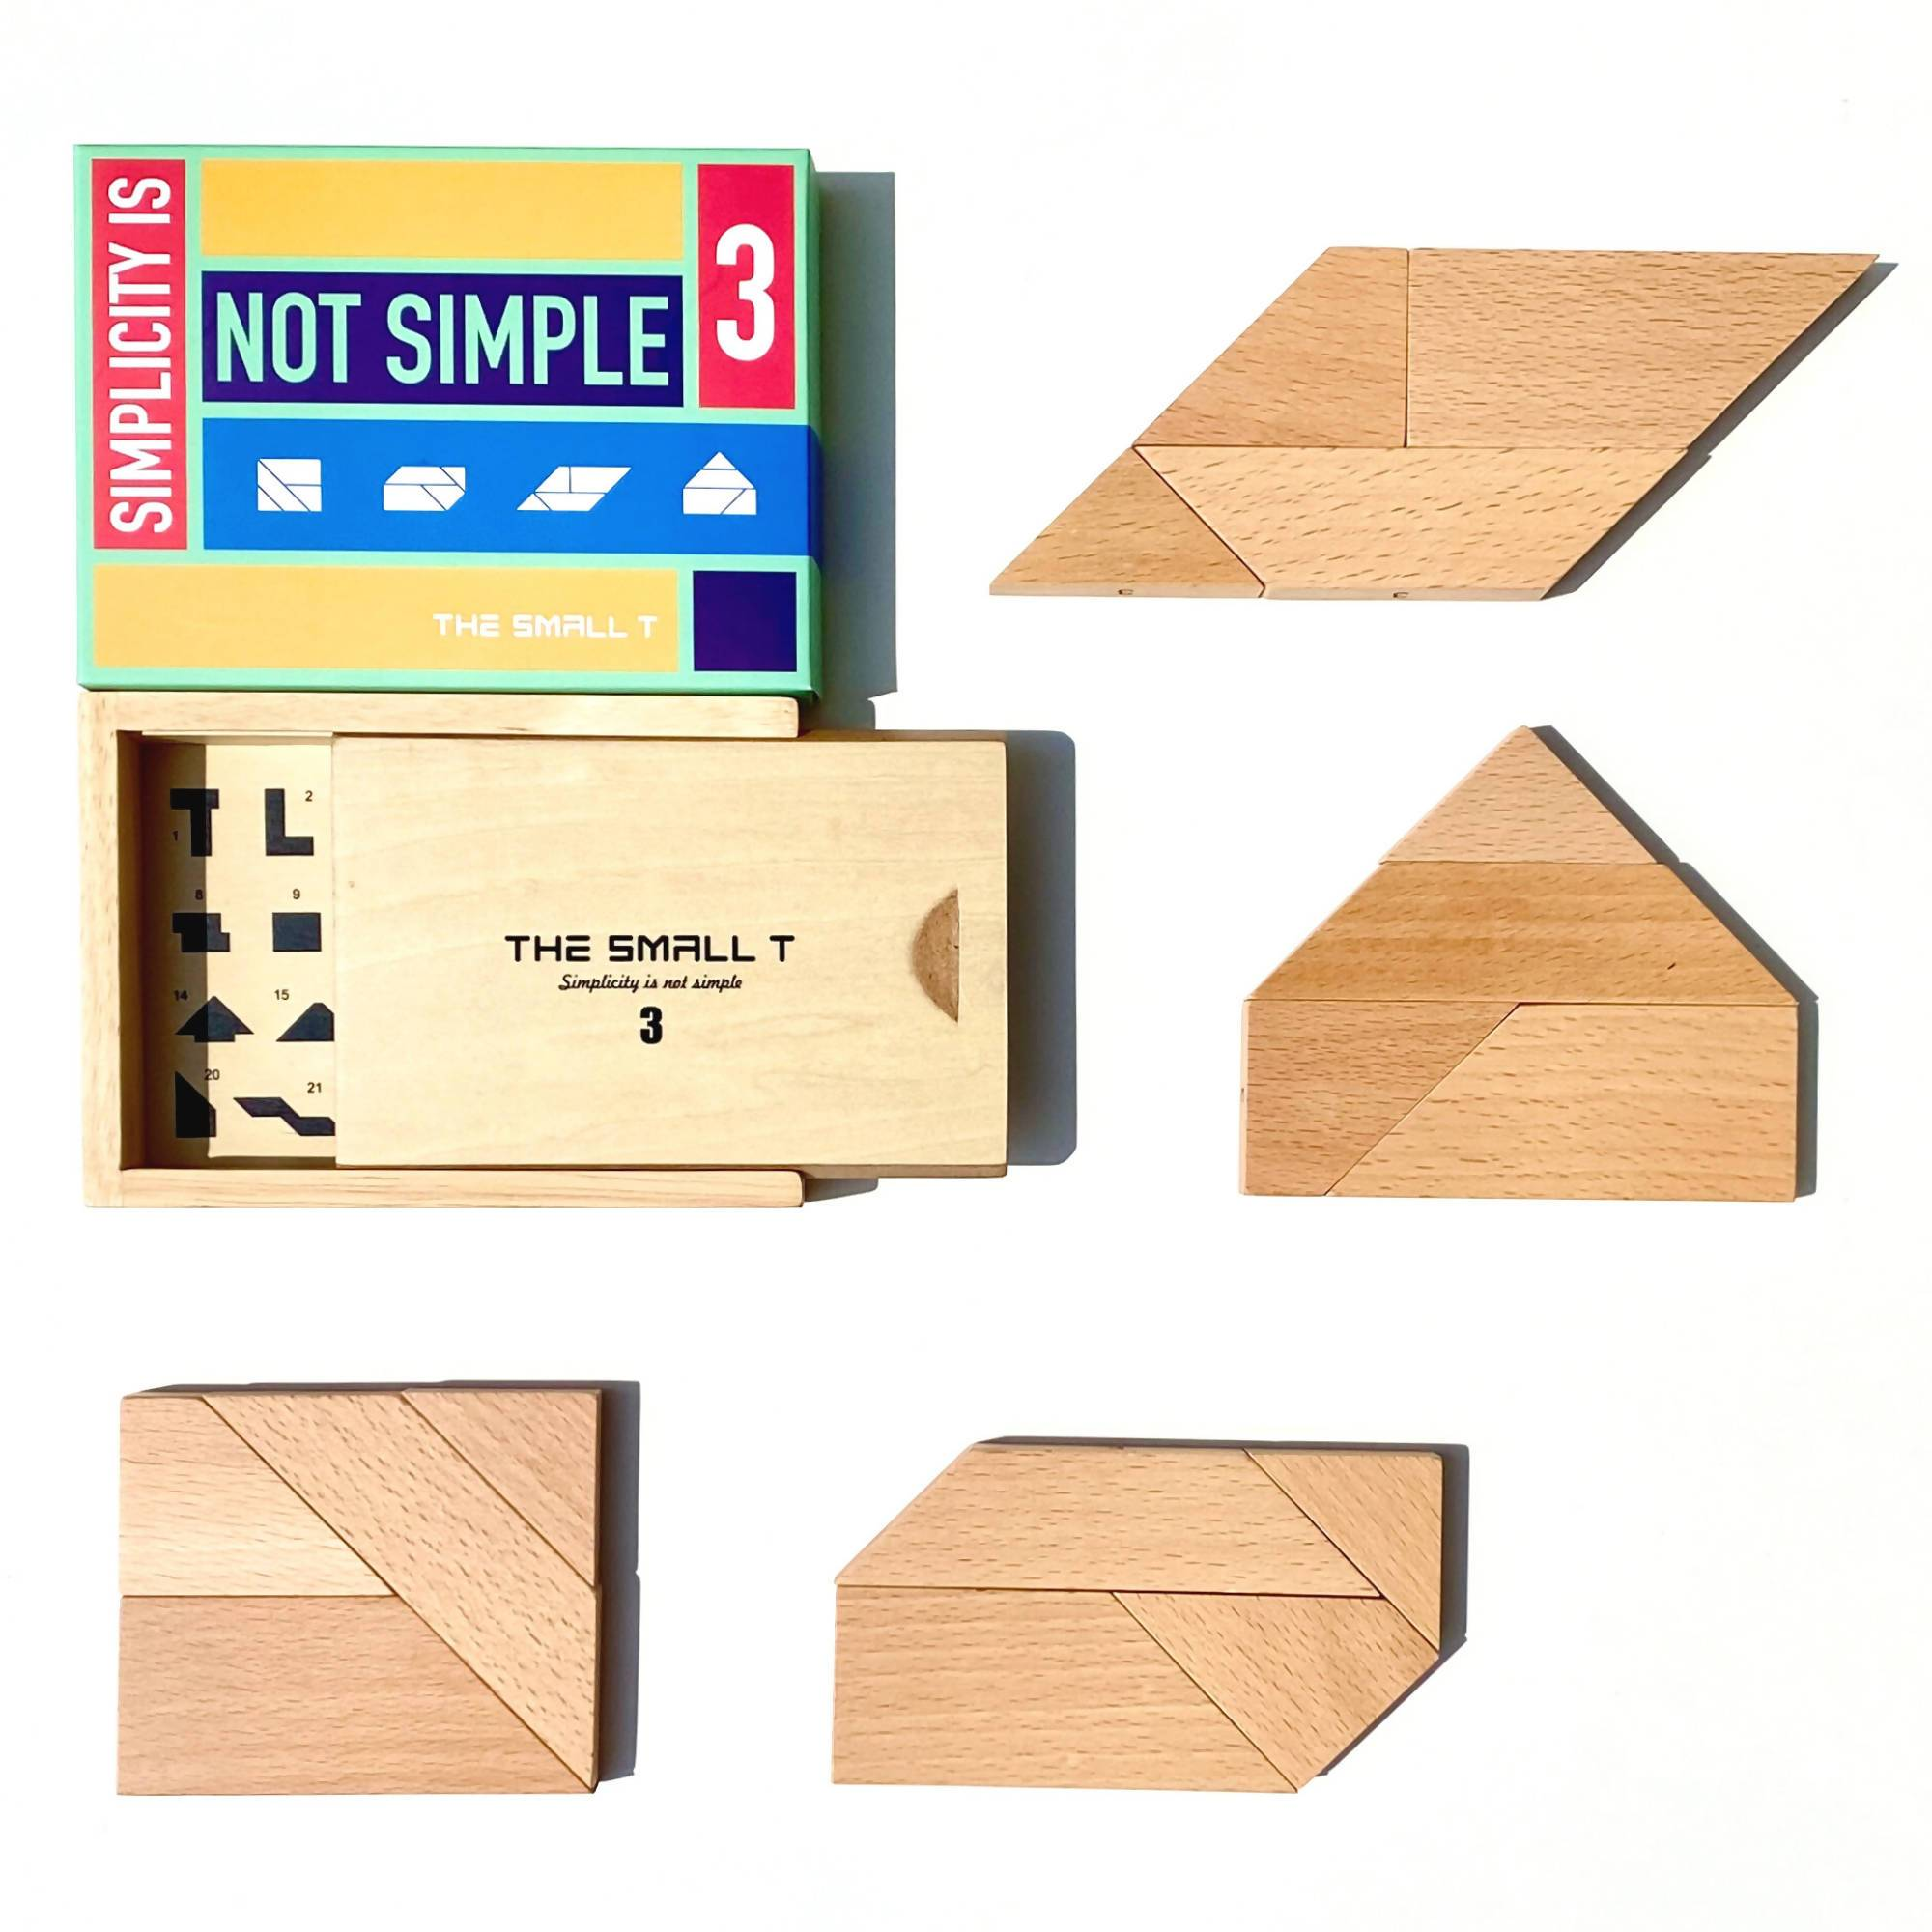 The Small T Tangram Brain Teaser Puzzle I Stem toys Wooden blocks Montessori puzzle | IQ Puzzle for kids ages 8-12 - Level 3 - Kids Toys - The Small T - Naiise